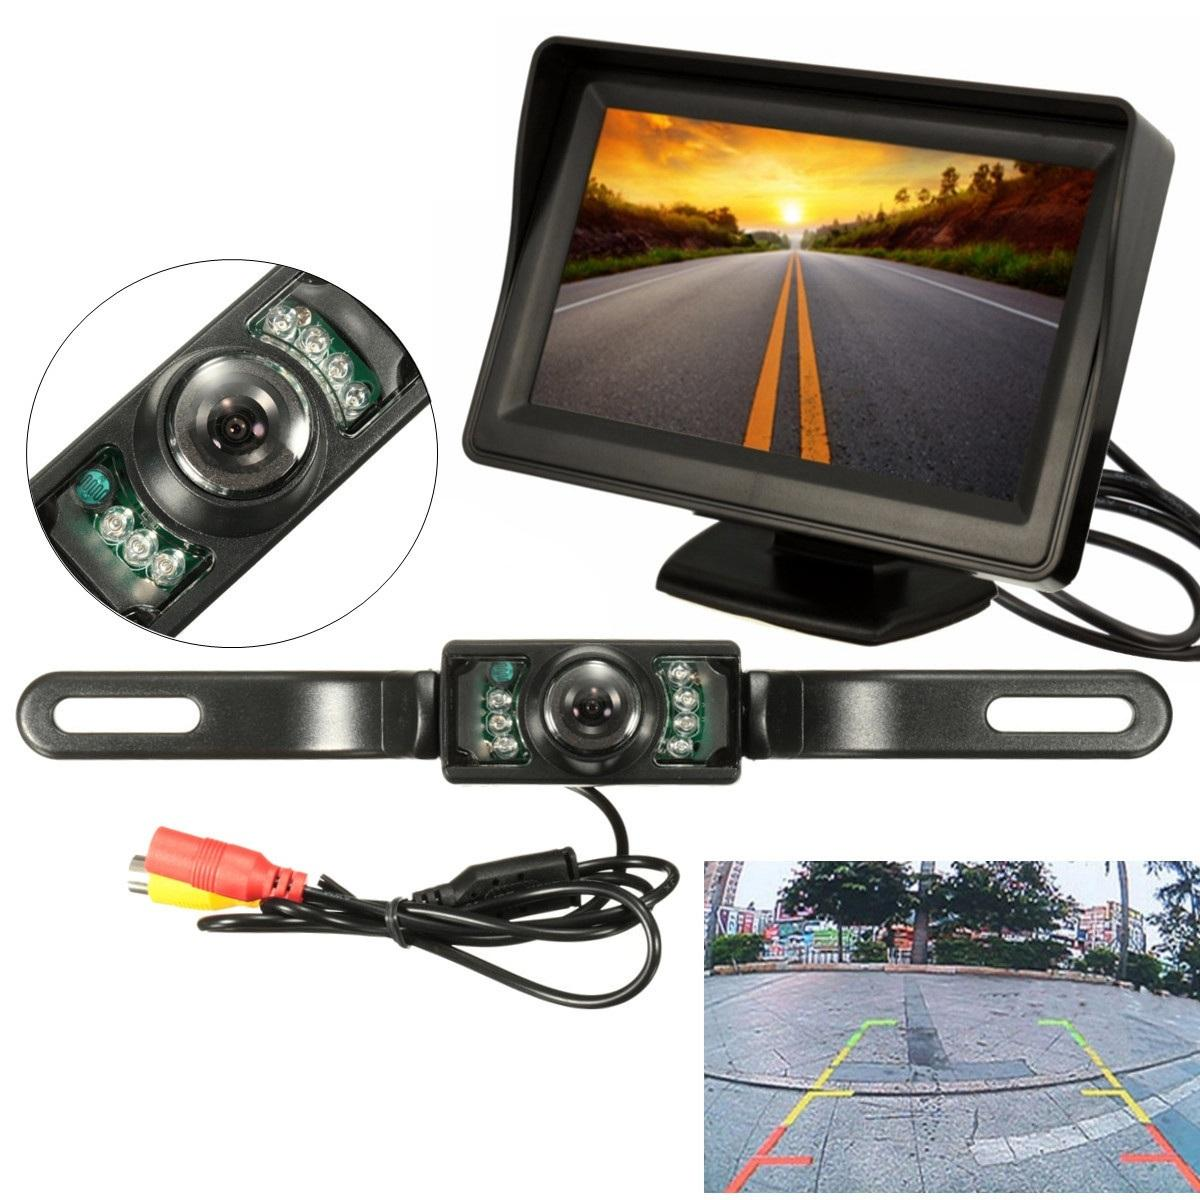 Spark-O LCD Display Rear View Mirror Backup Camera System - Reversing Camera